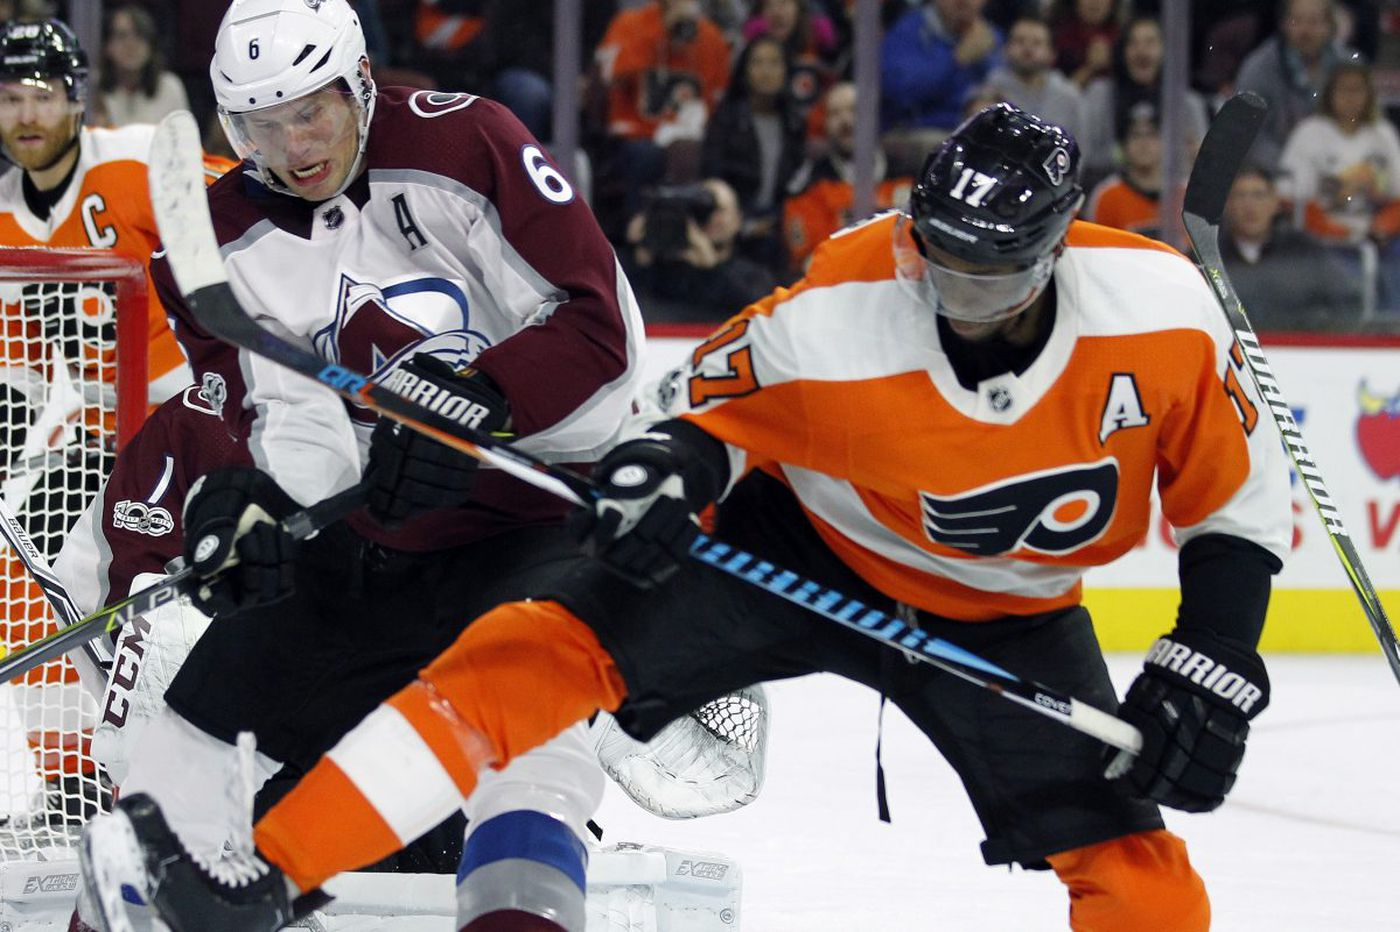 Sizzling top line needs help for Flyers to climb in Metro